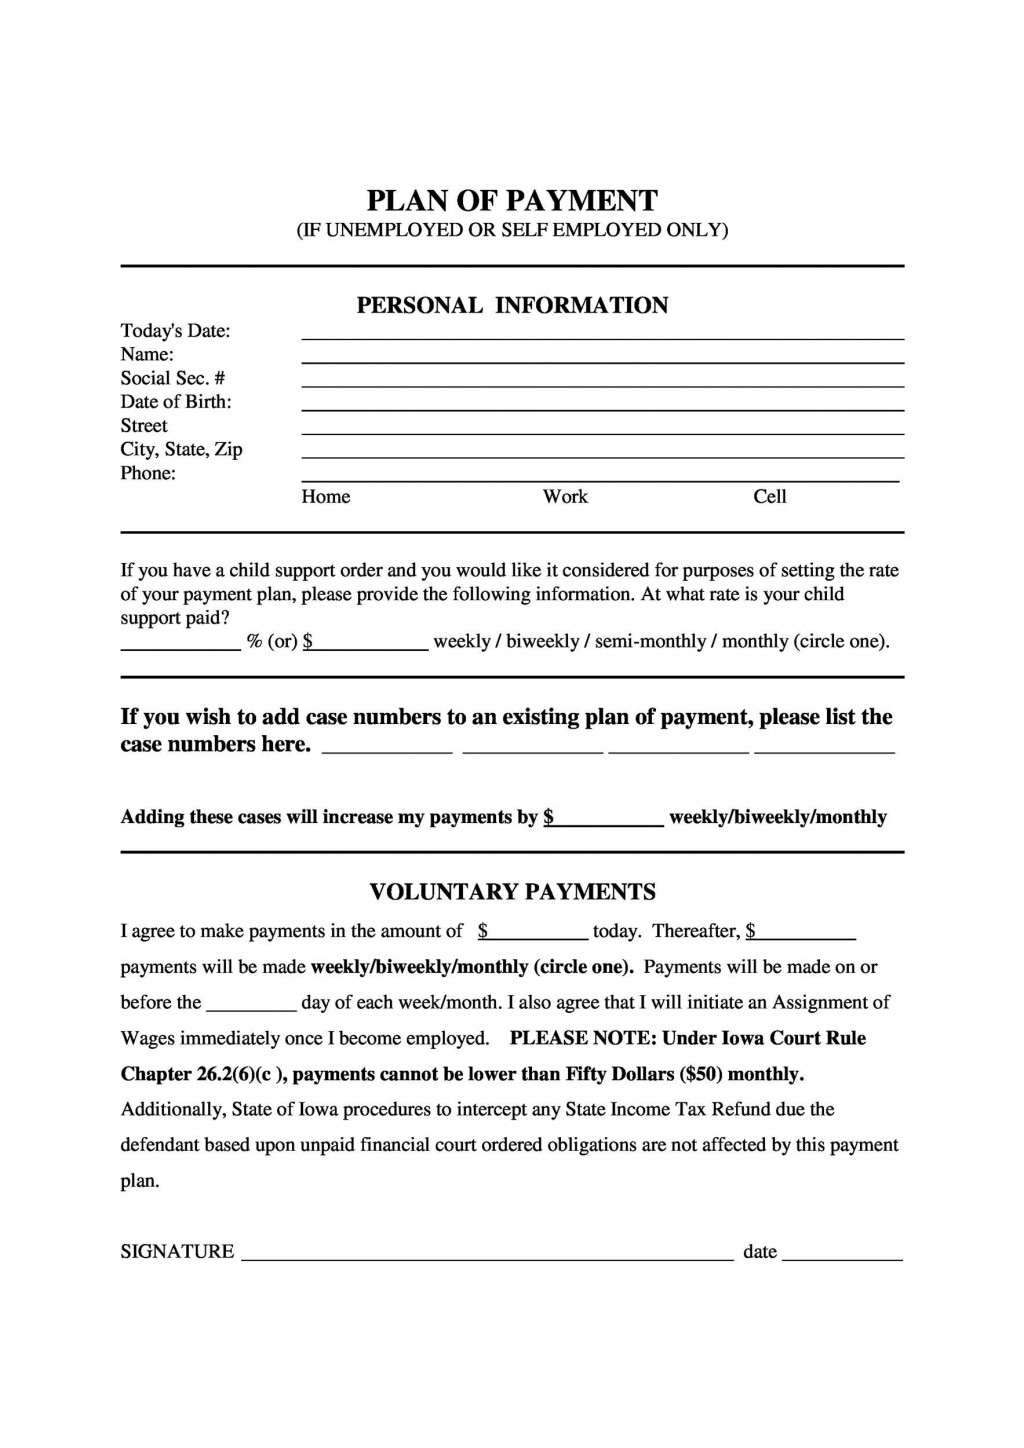 007 Striking Installment Payment Contract Template Image  Agreement Free Car WordLarge